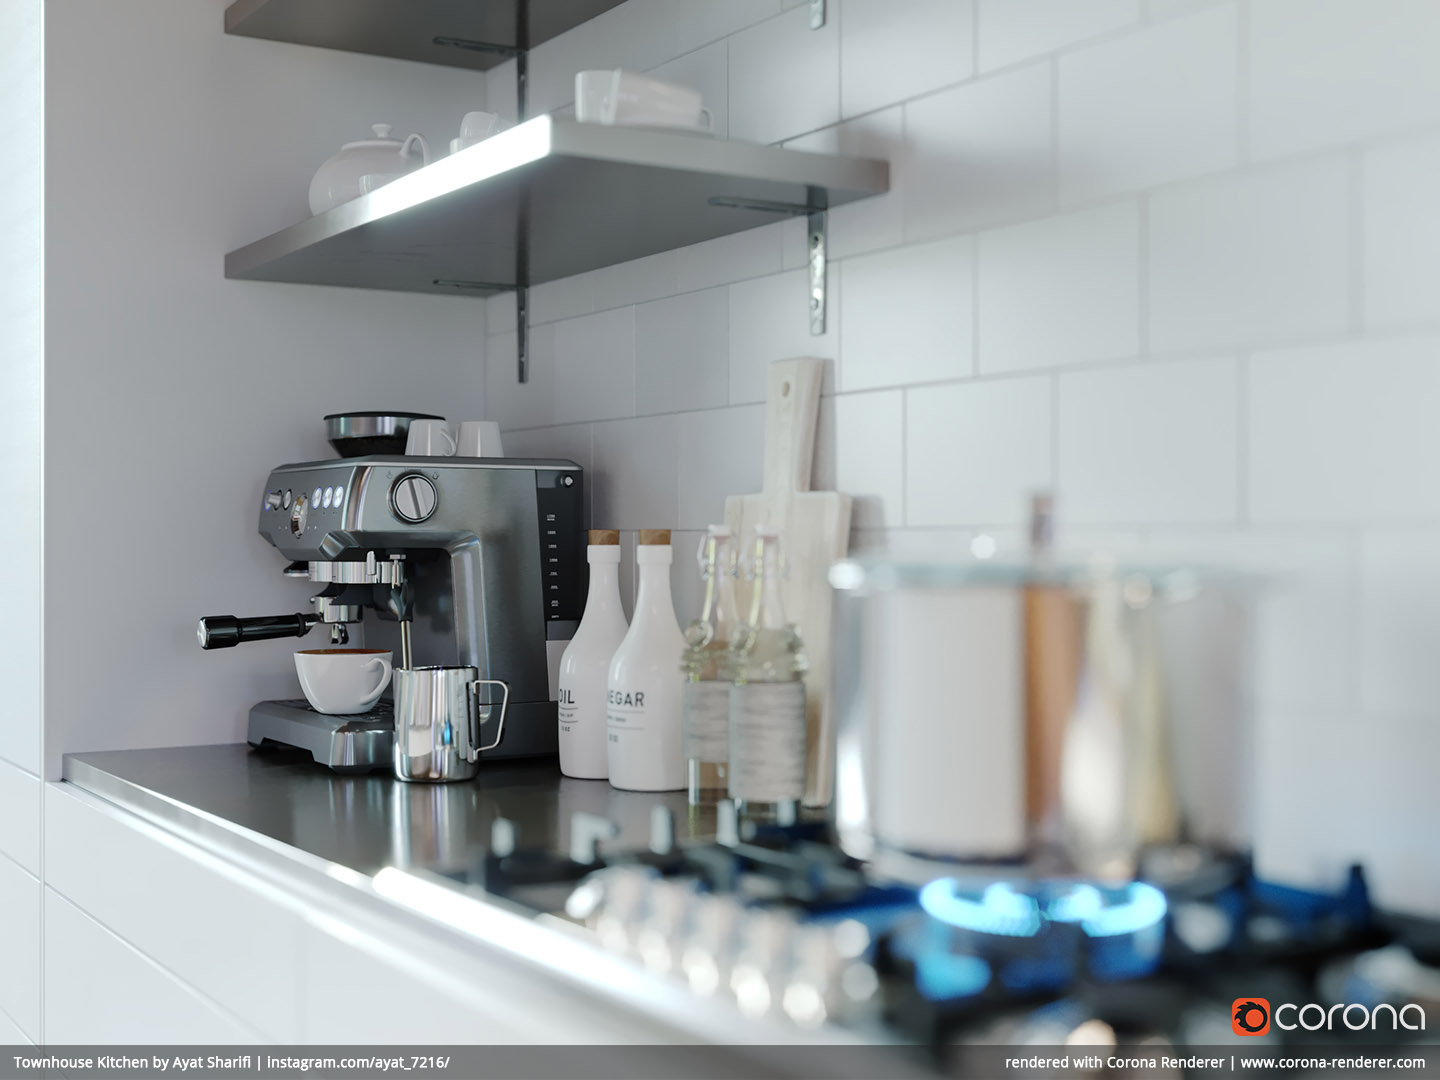 Townhouse Kitchen 03 by Ayat Sharifi